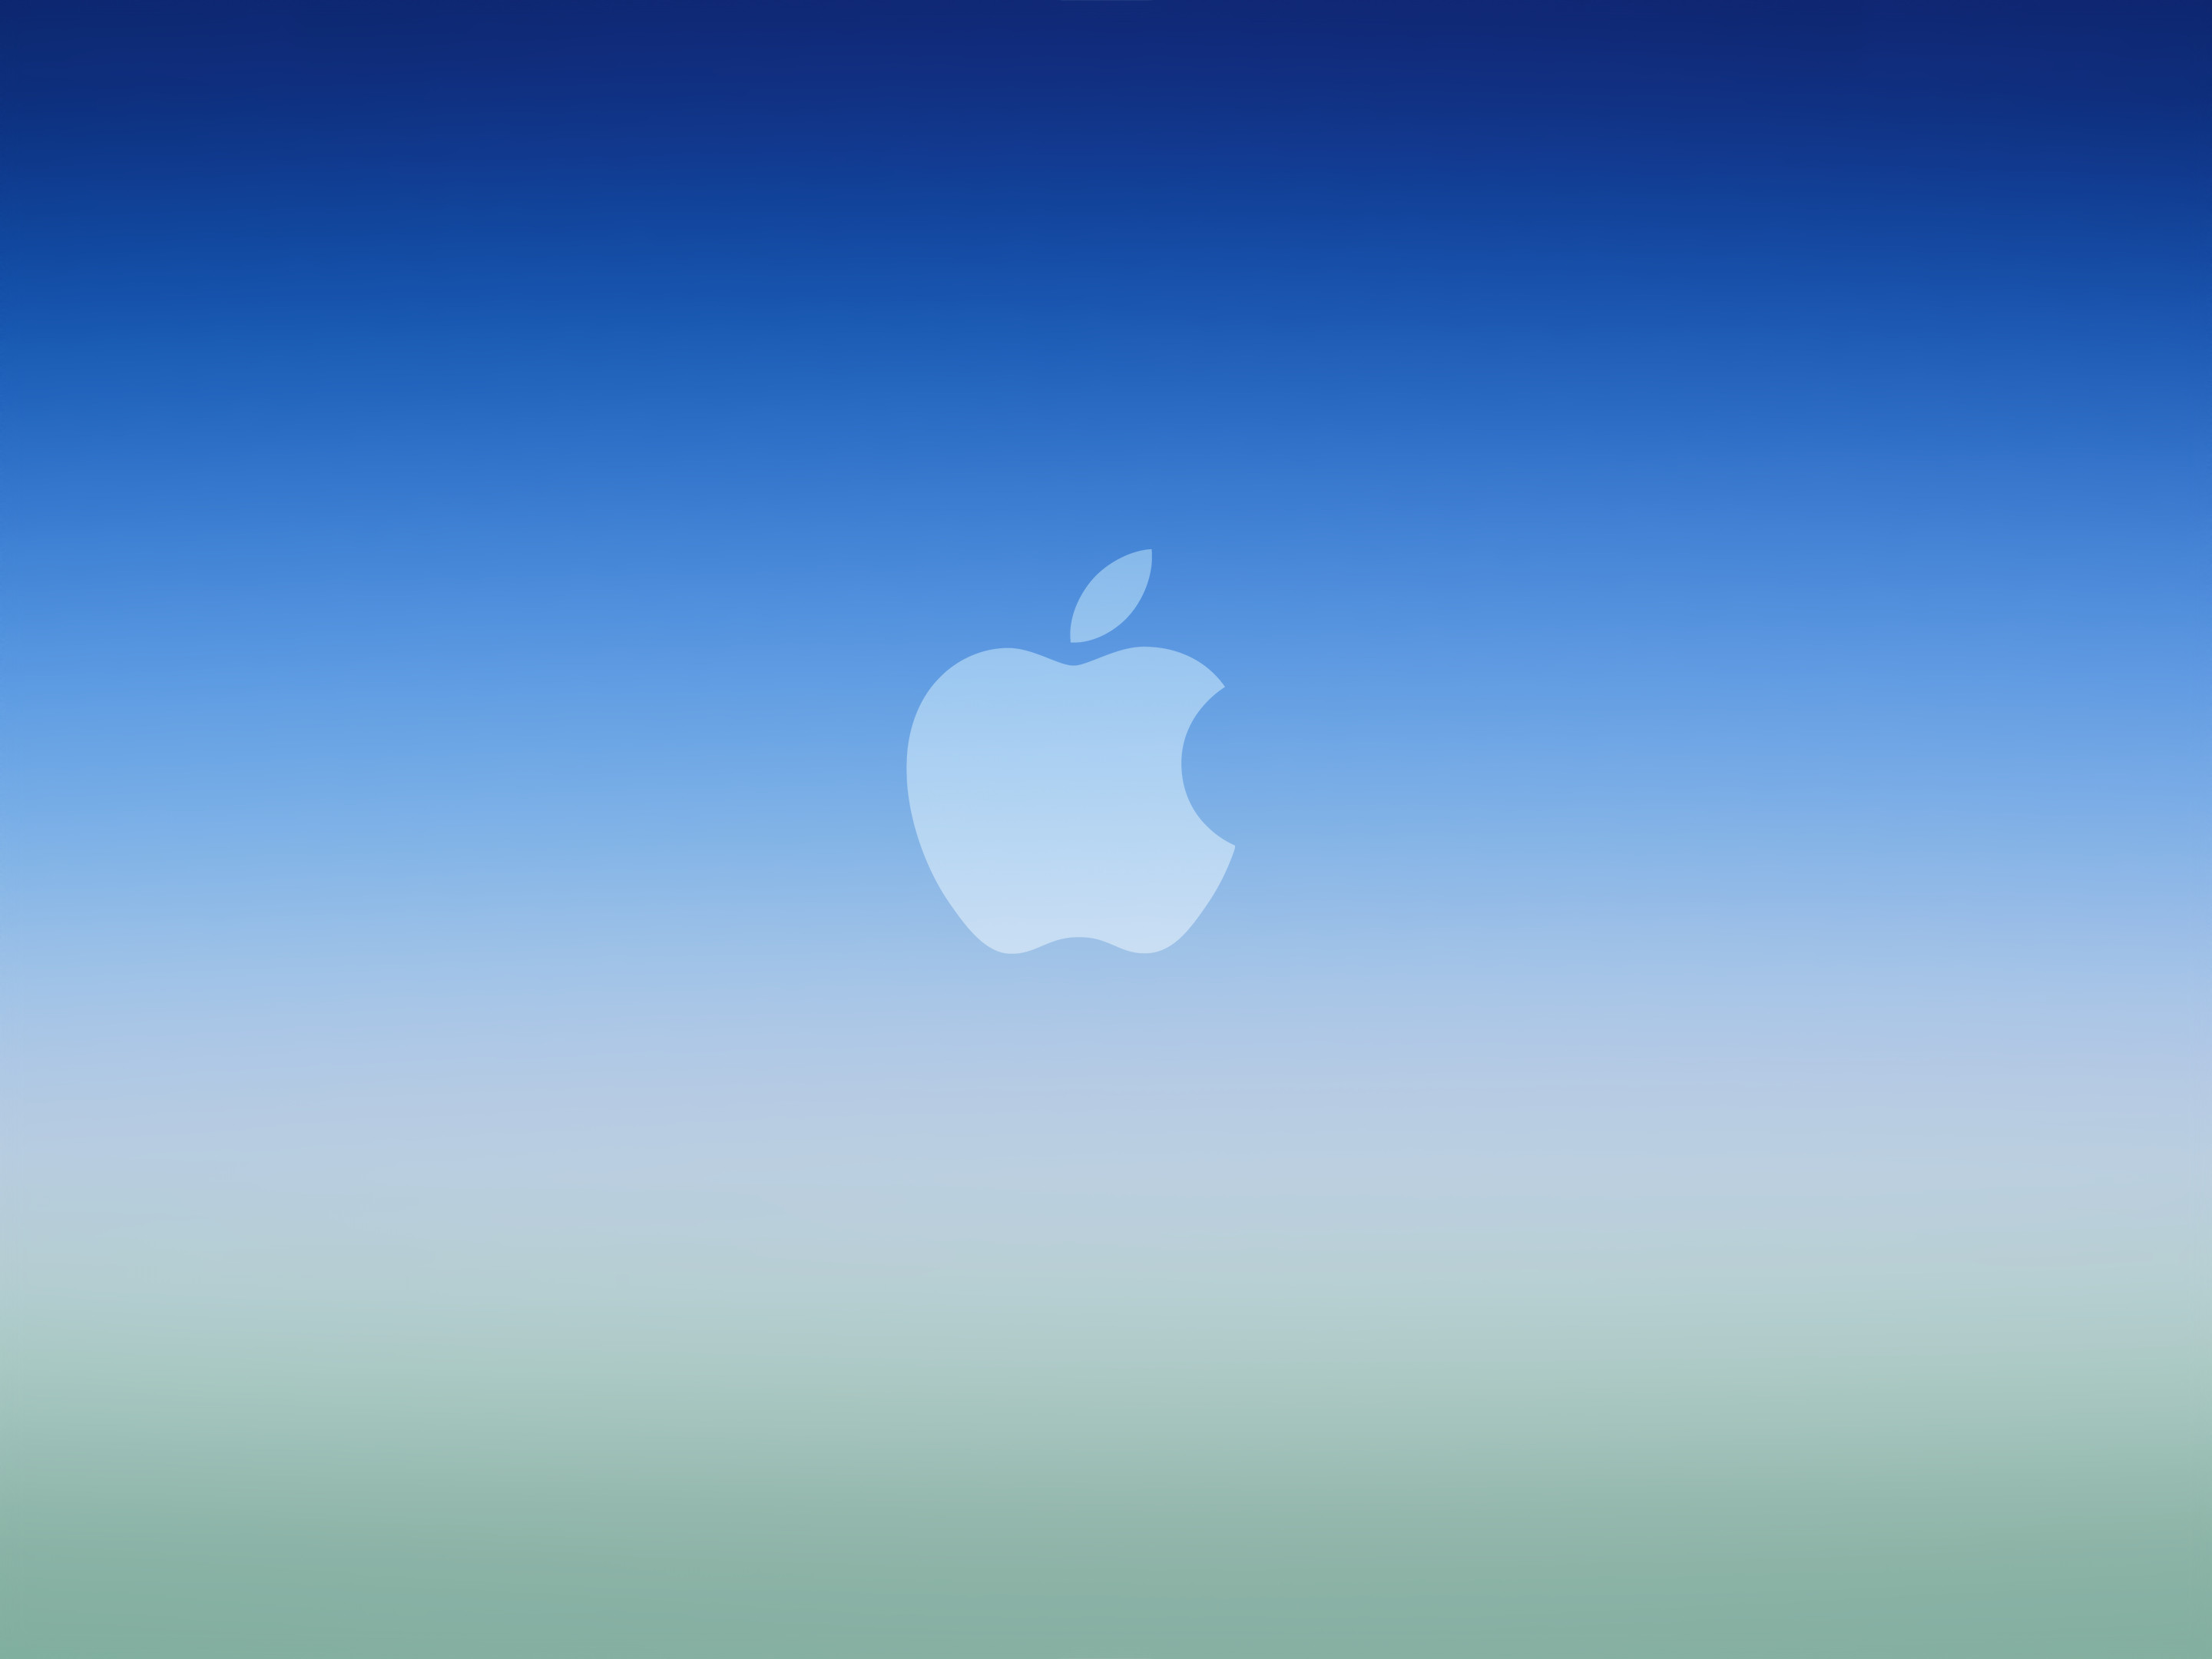 2880x2160 blue-ios-gradient-apple-logowallpaper